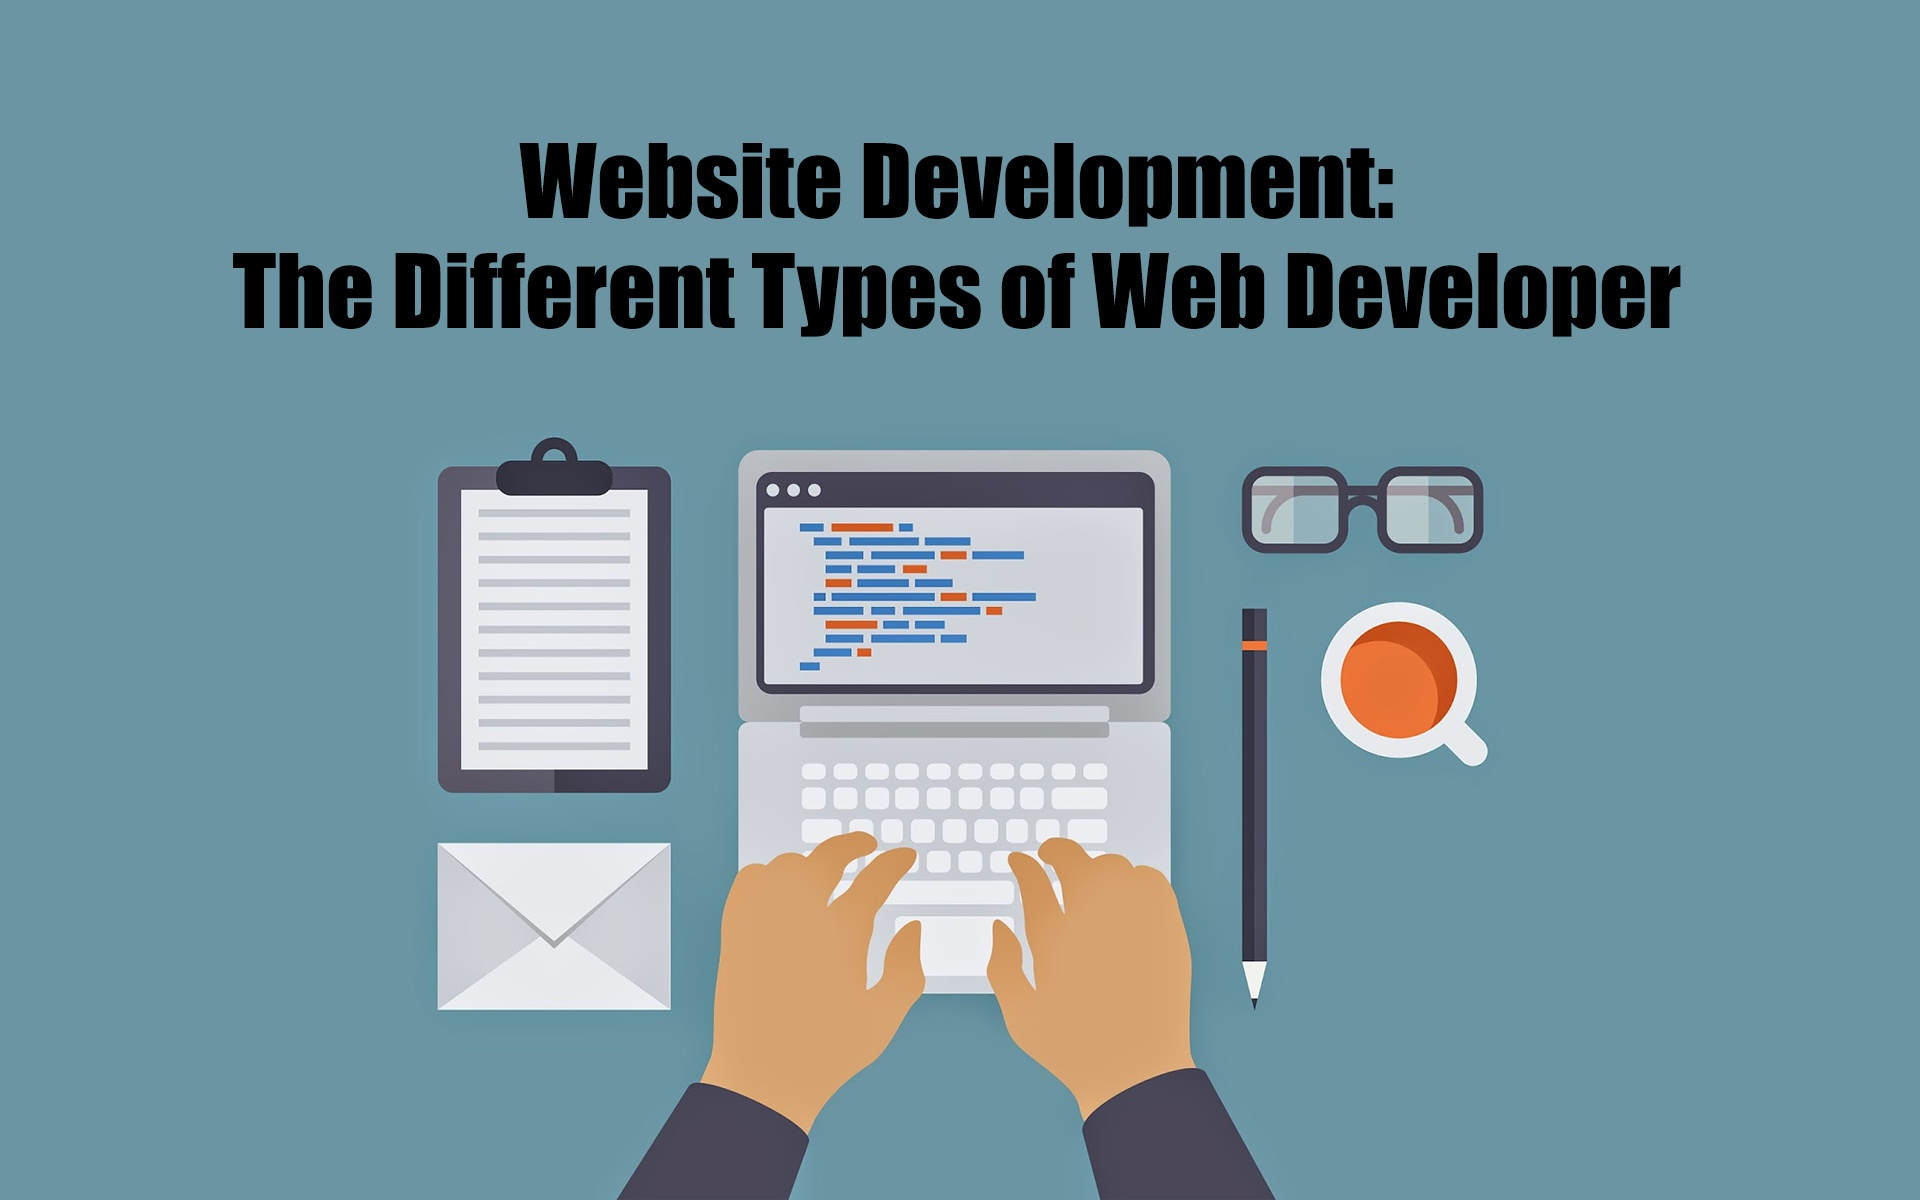 Website Development: The Different Types of Web Developer